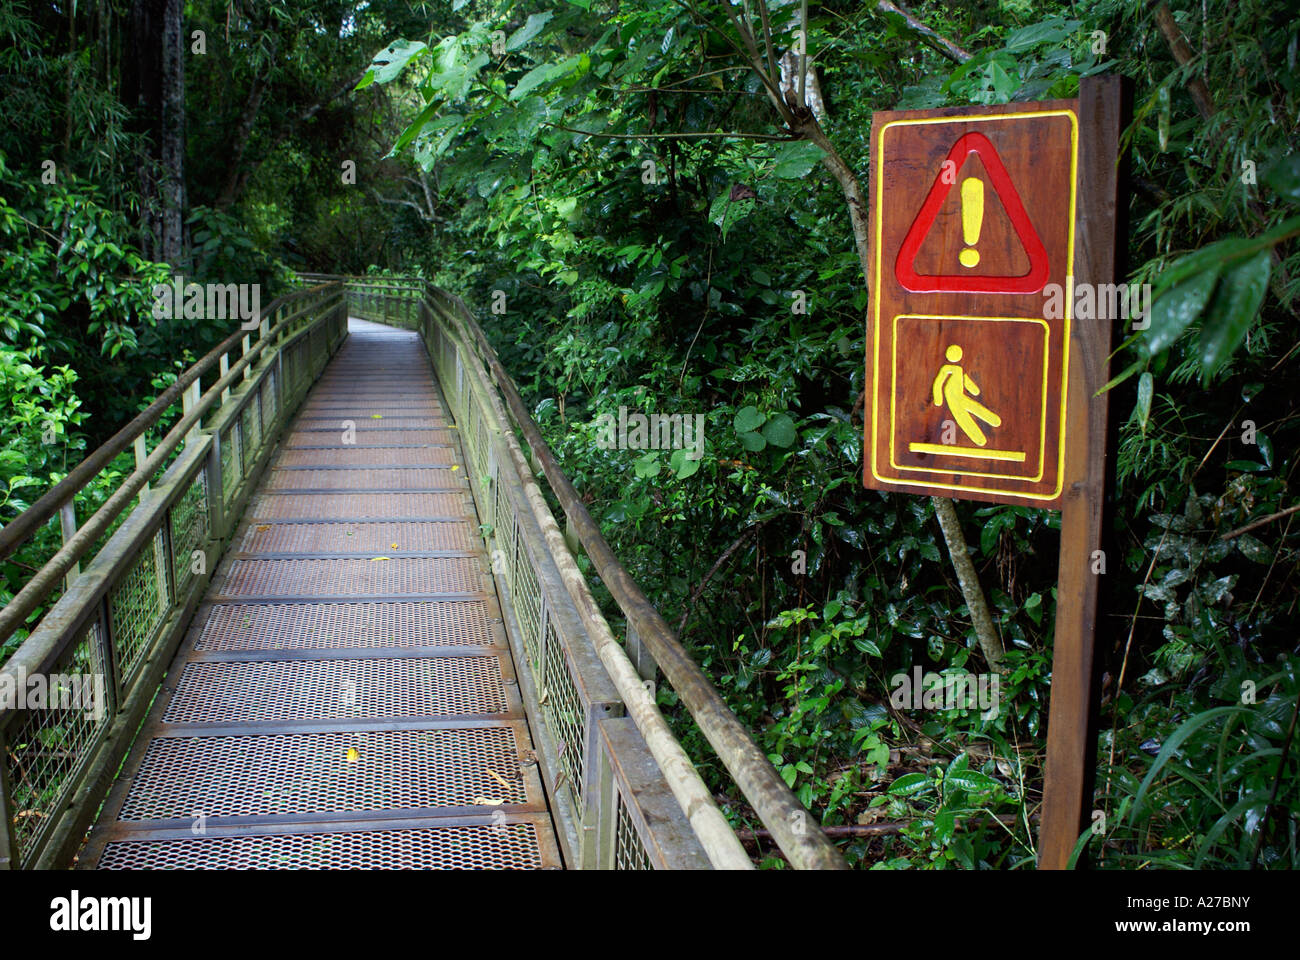 Footbridge and wooden sign for 'take care, slippery' - Stock Image